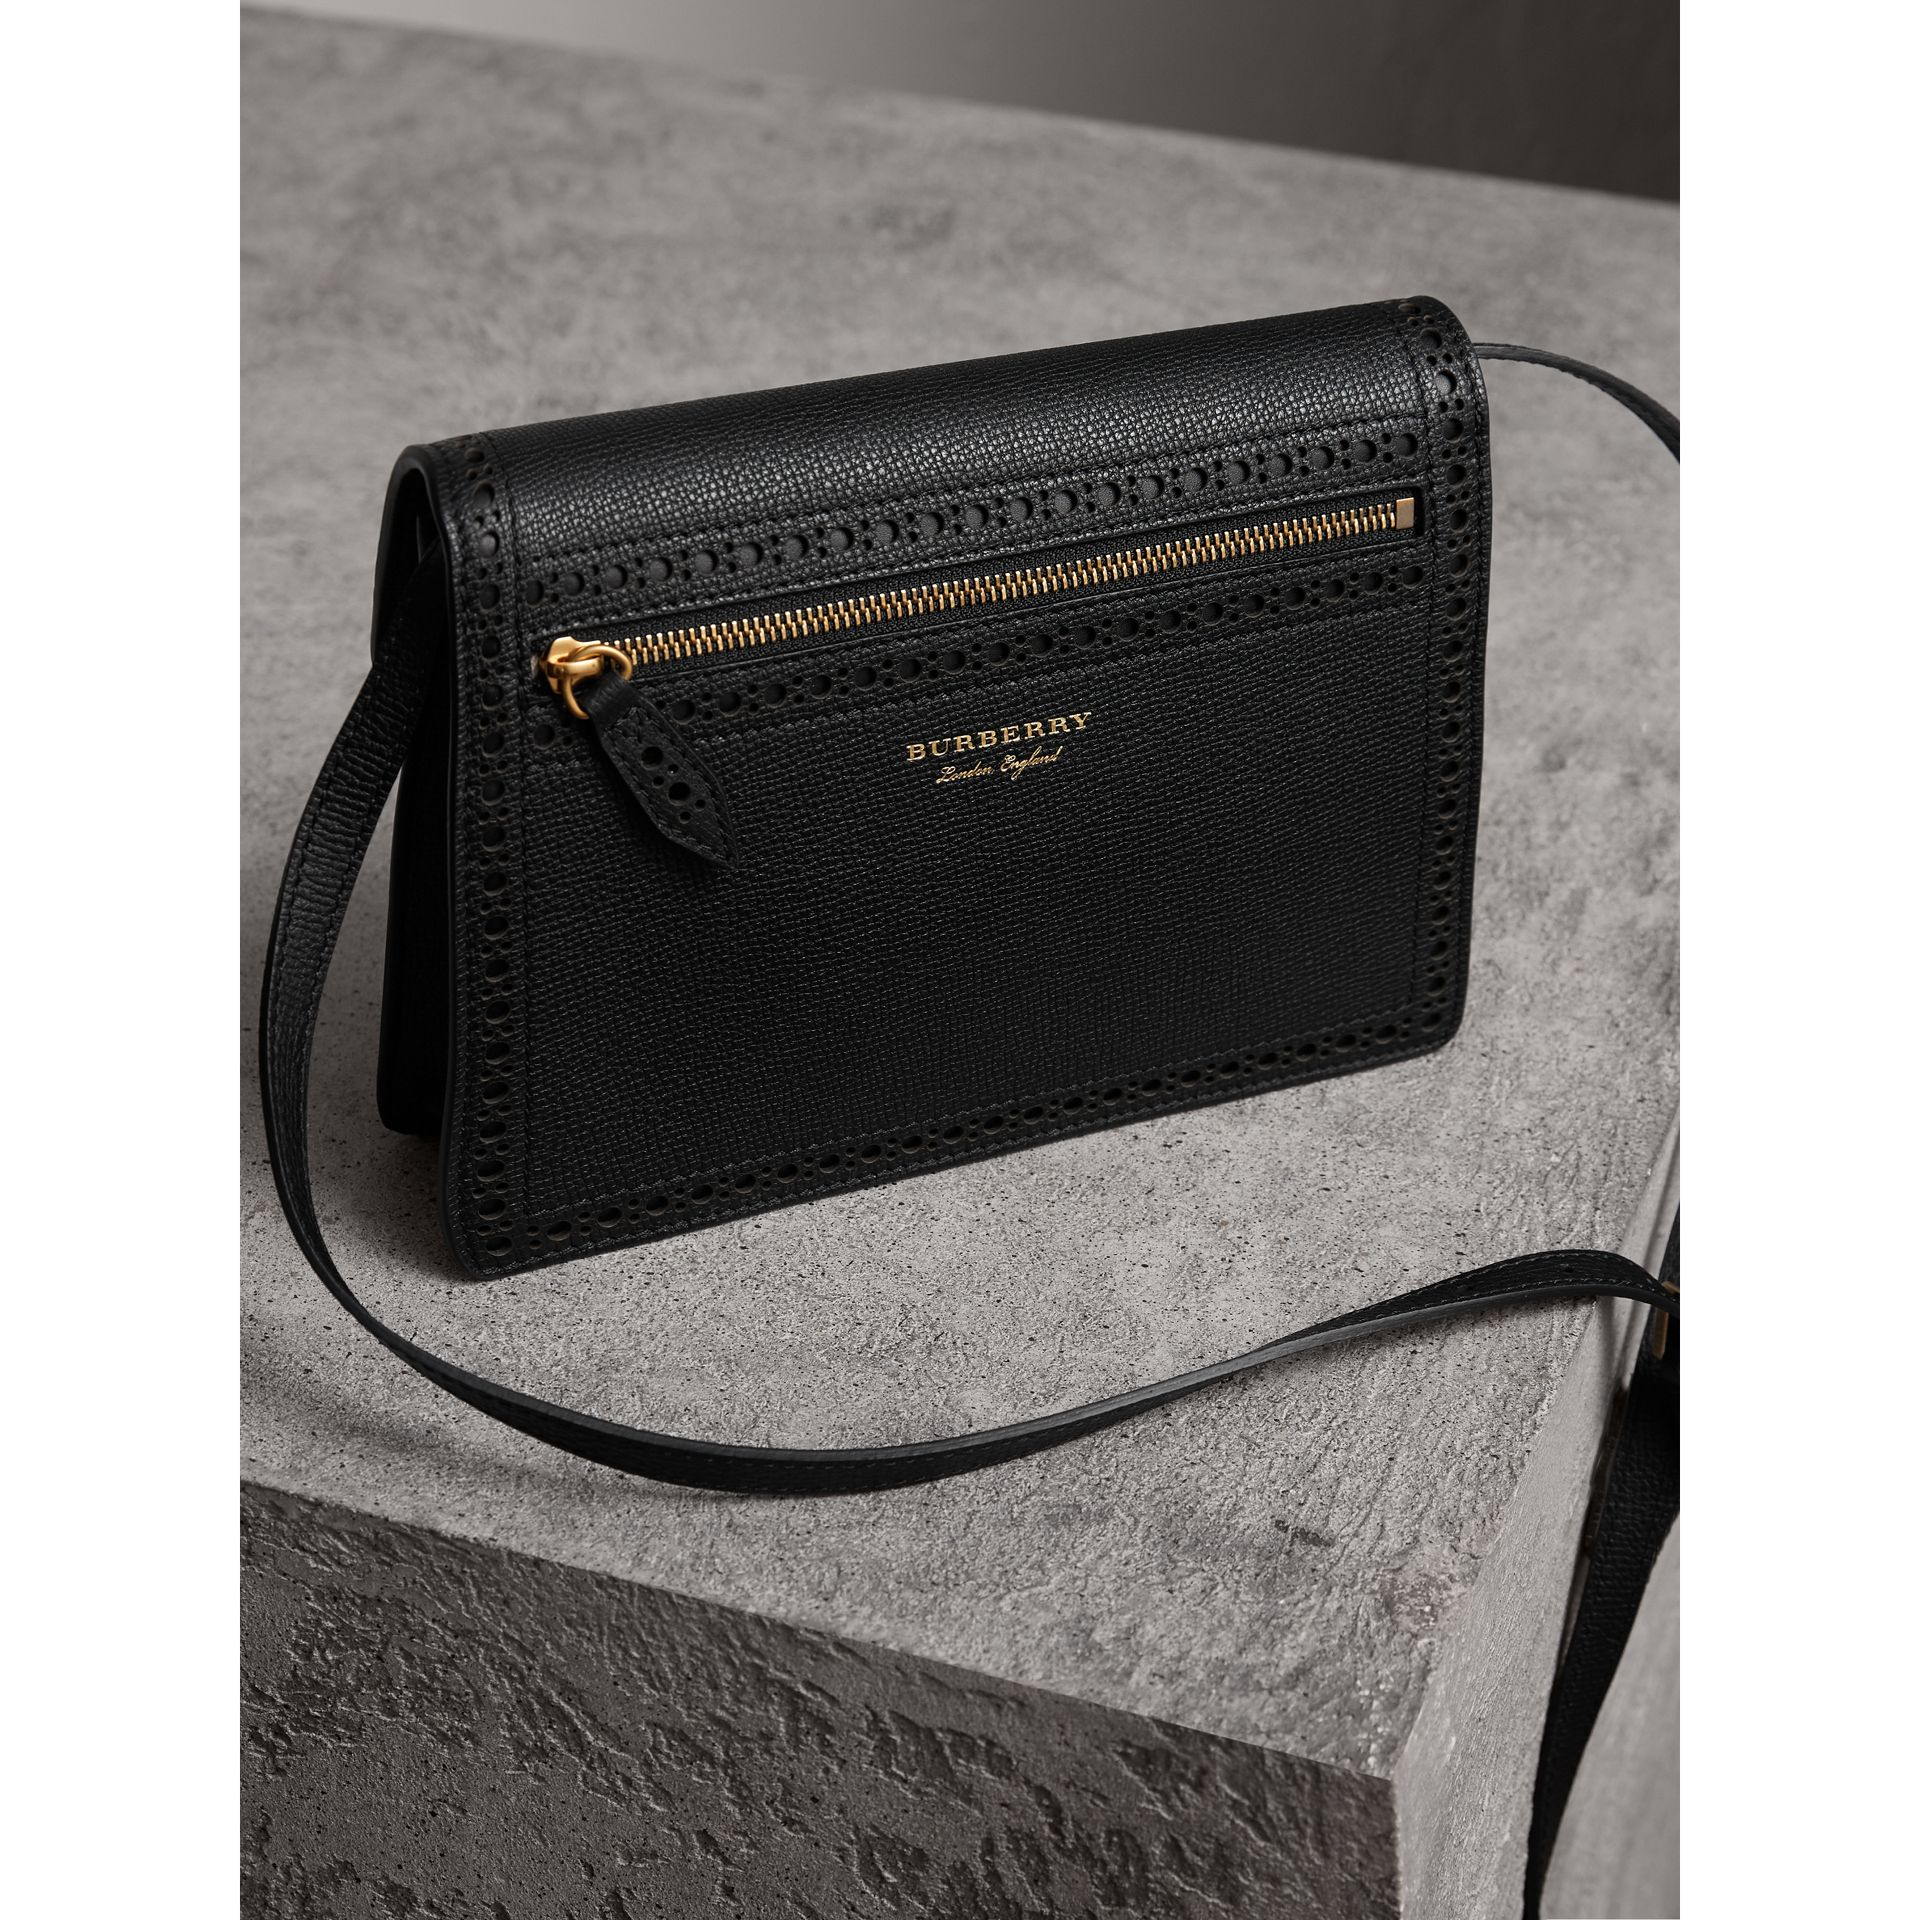 Brogue and Fringe Detail Leather Crossbody Bag in Black - Women | Burberry United Kingdom - gallery image 3